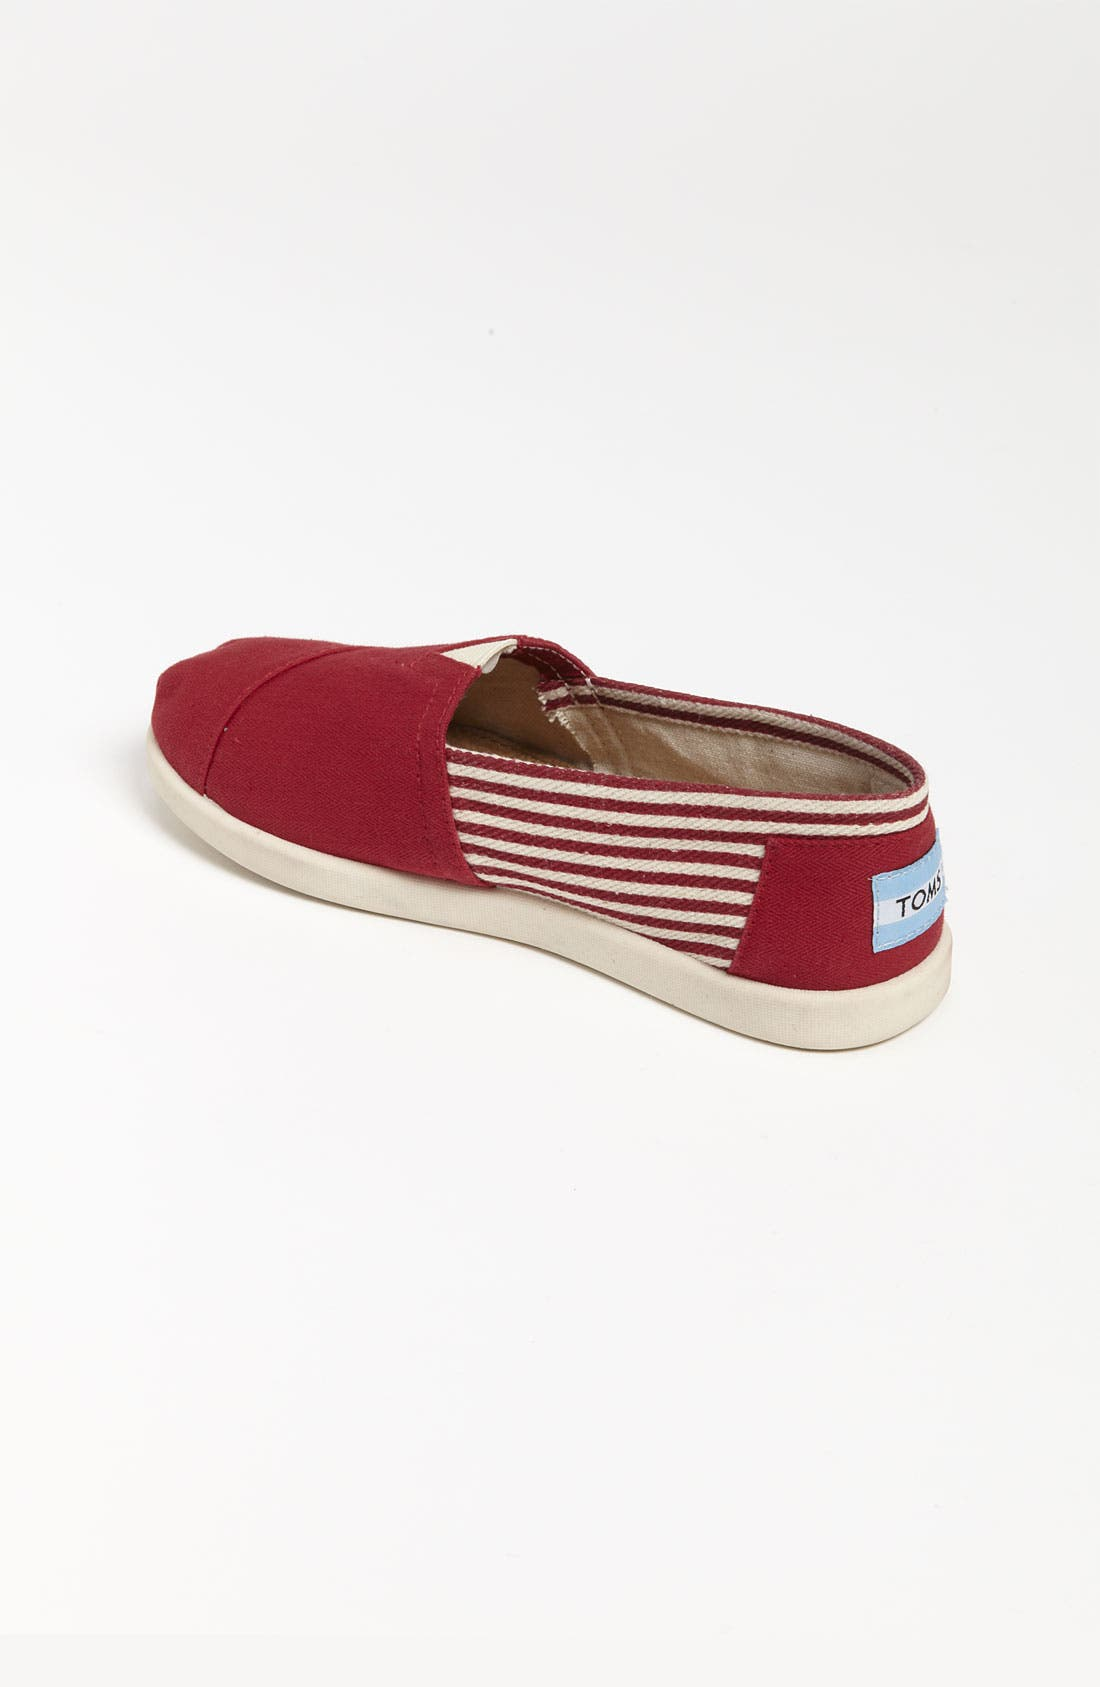 Alternate Image 2  - TOMS 'Classic Youth - University' Canvas Slip-On (Toddler, Little Kid & Big Kid) (Nordstrom Exclusive)